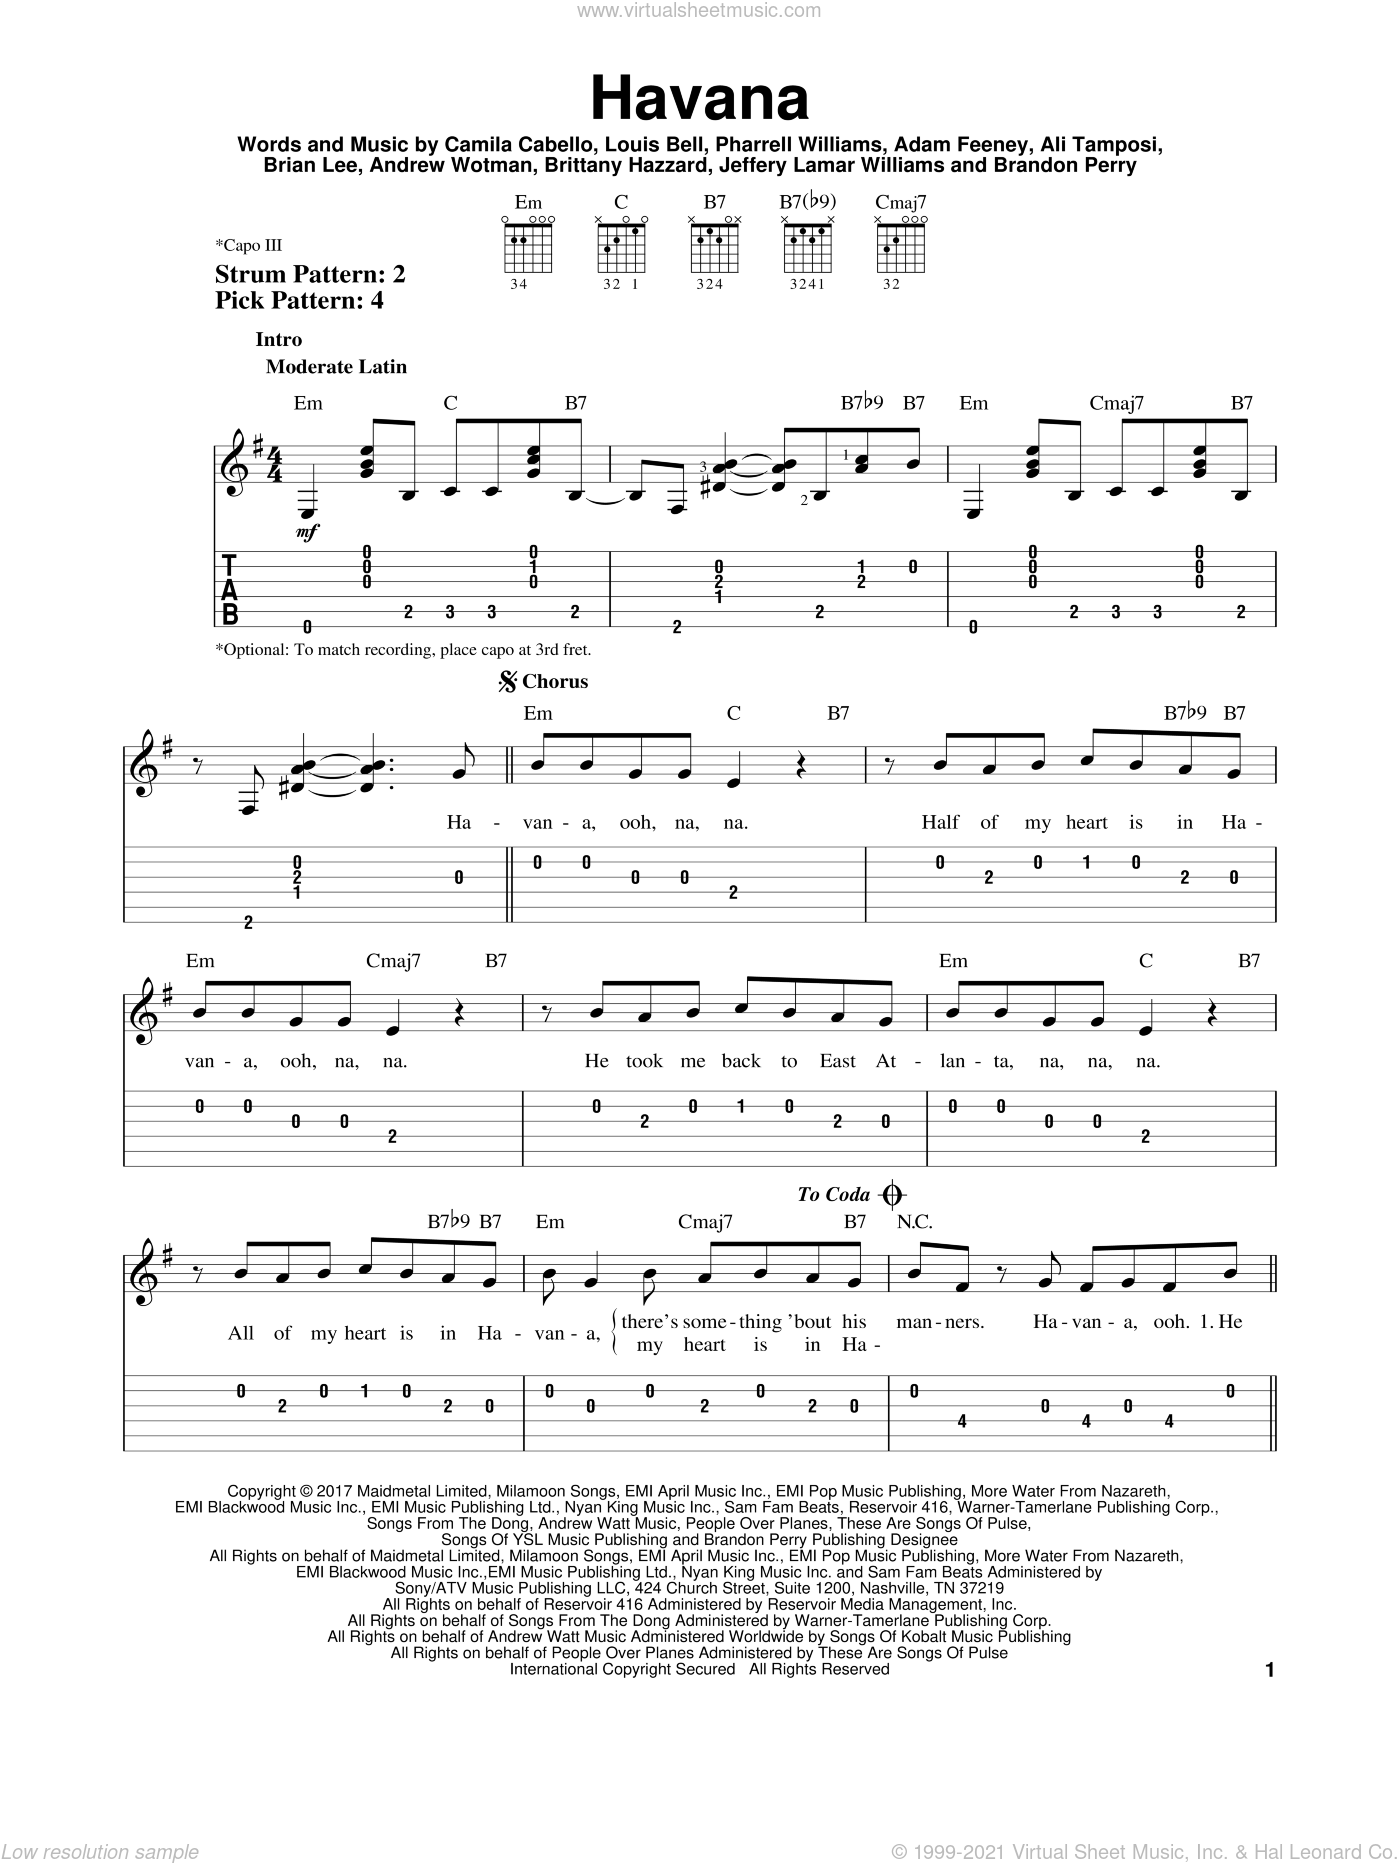 Havana sheet music for guitar solo (easy tablature) by Camila Cabello, Adam Feeney, Ali Tamposi, Andrew Wotman, Brandon Perry, Brian Lee, Brittany Hazzard, Jeffery Lamar Williams, Louis Bell and Pharrell Williams, easy guitar (easy tablature)